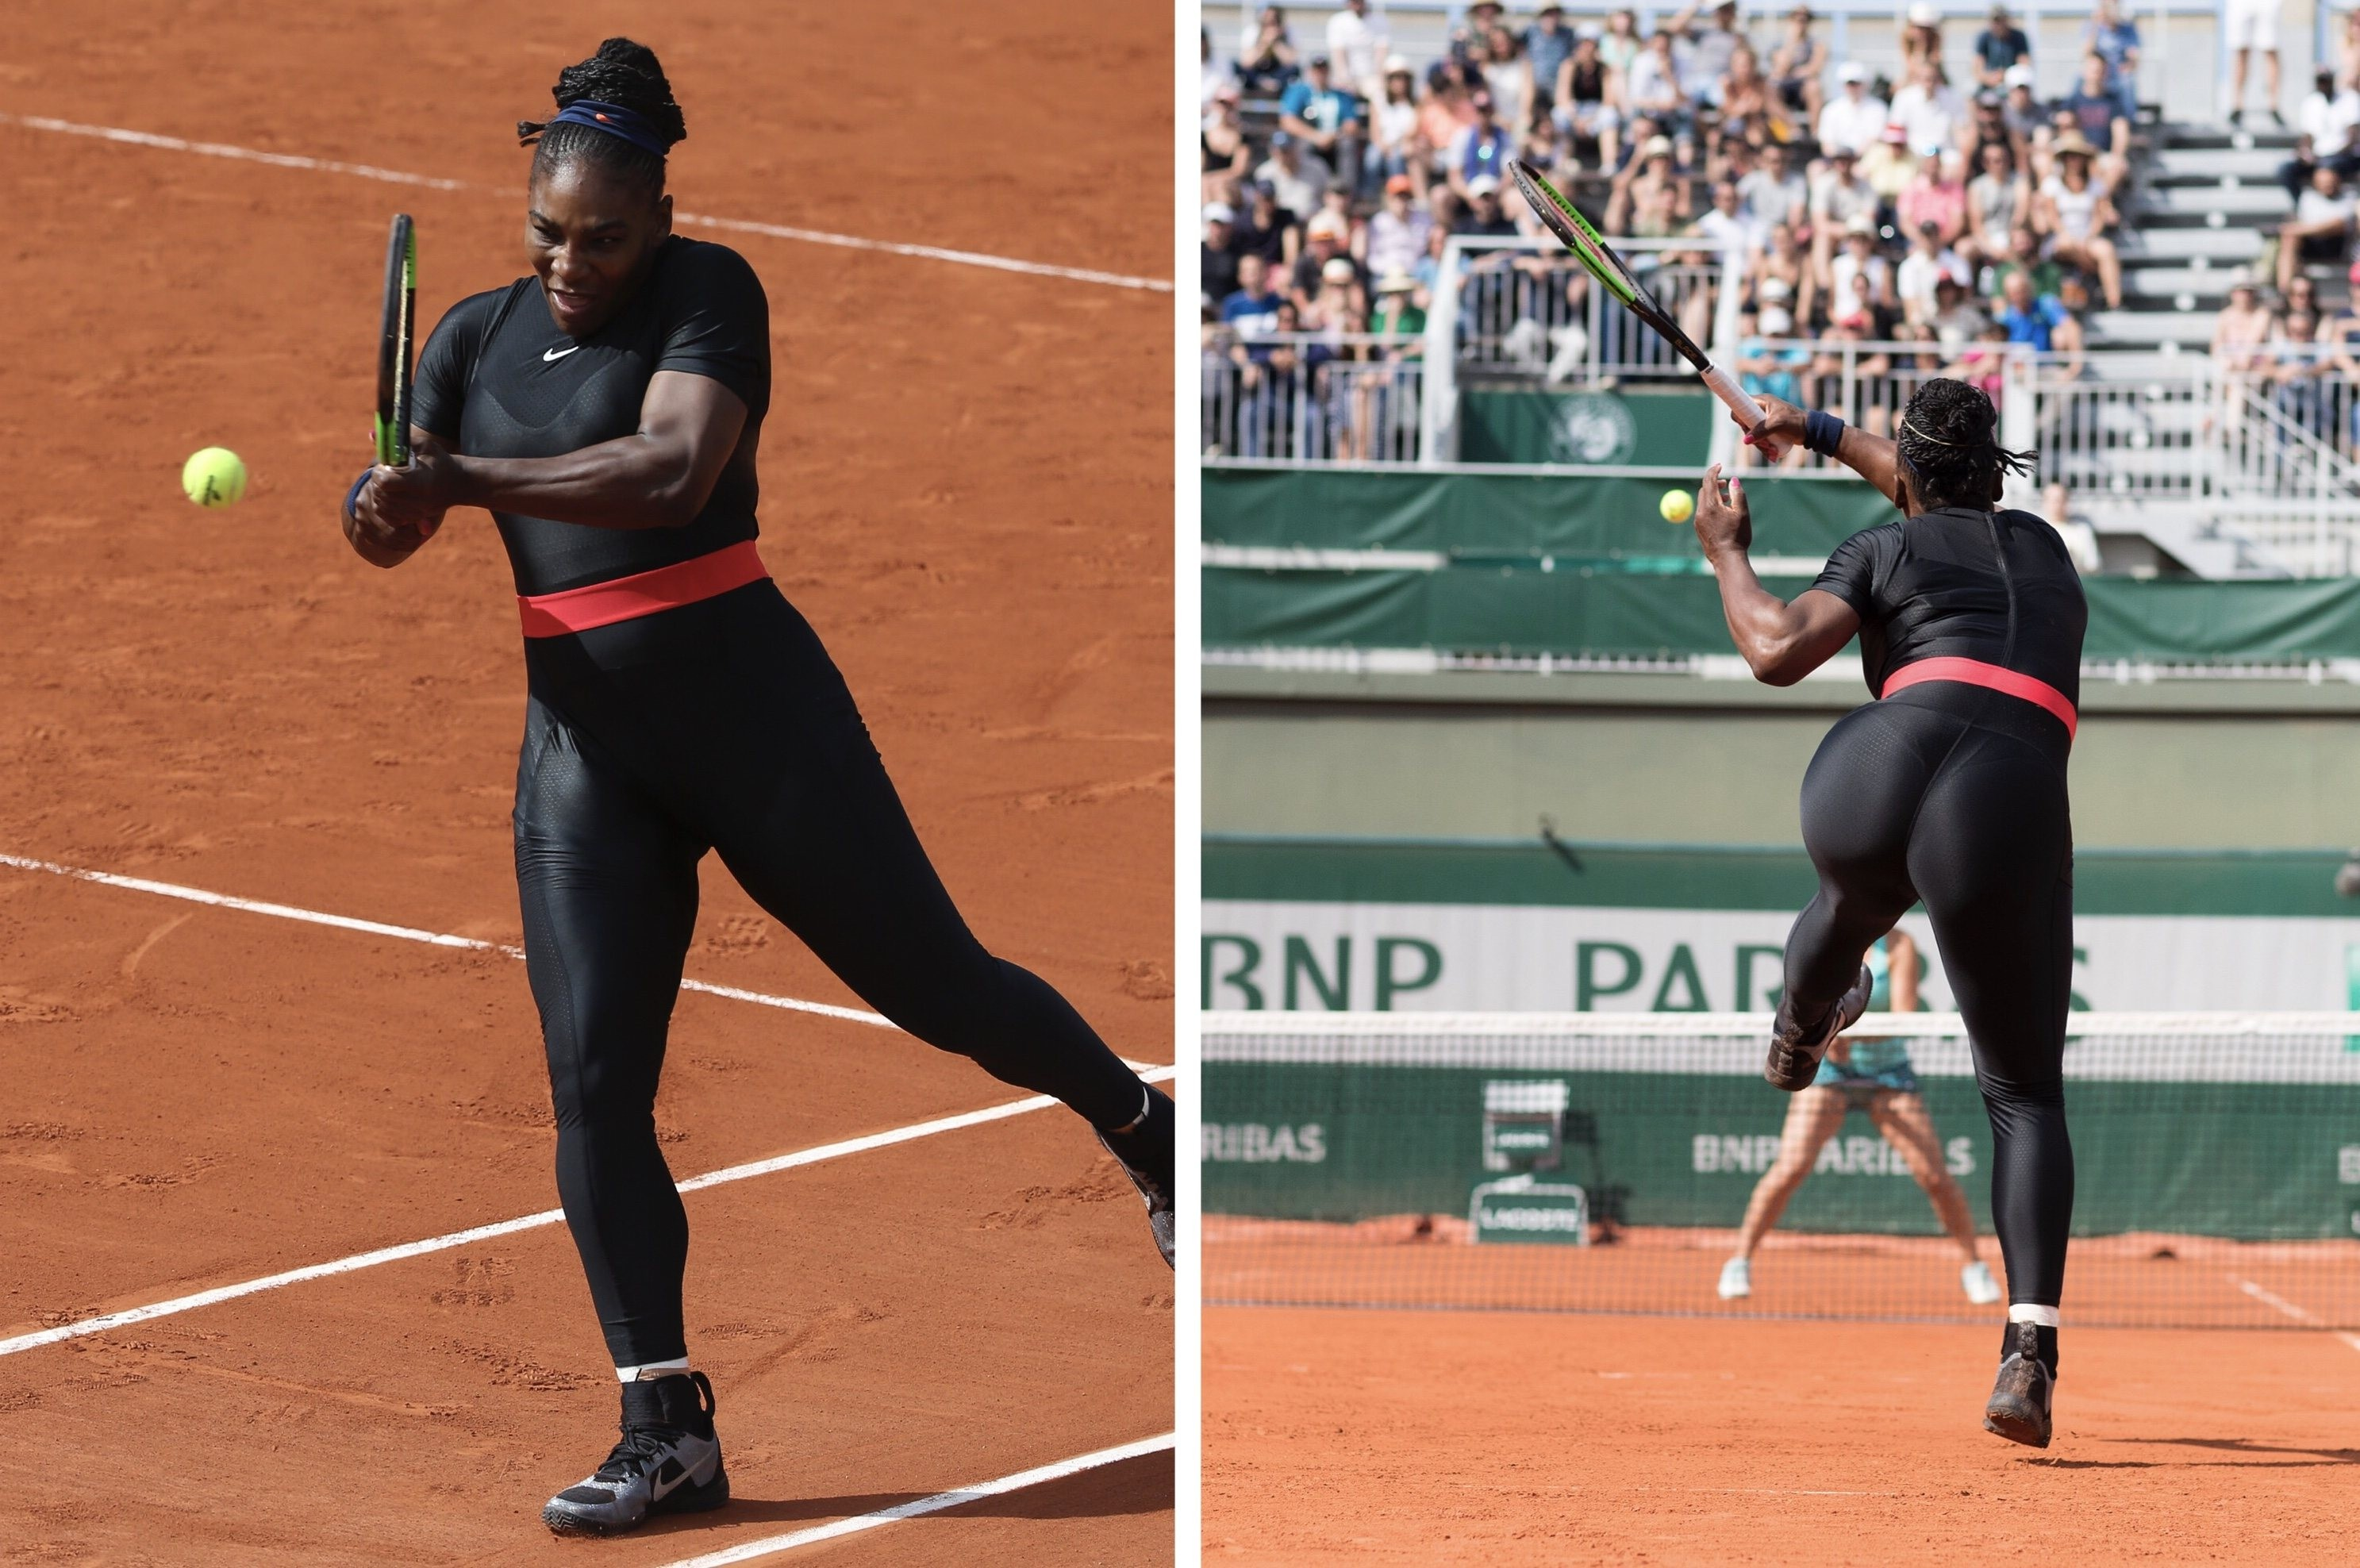 Serena Williams banned from wearing catsuit at French Open